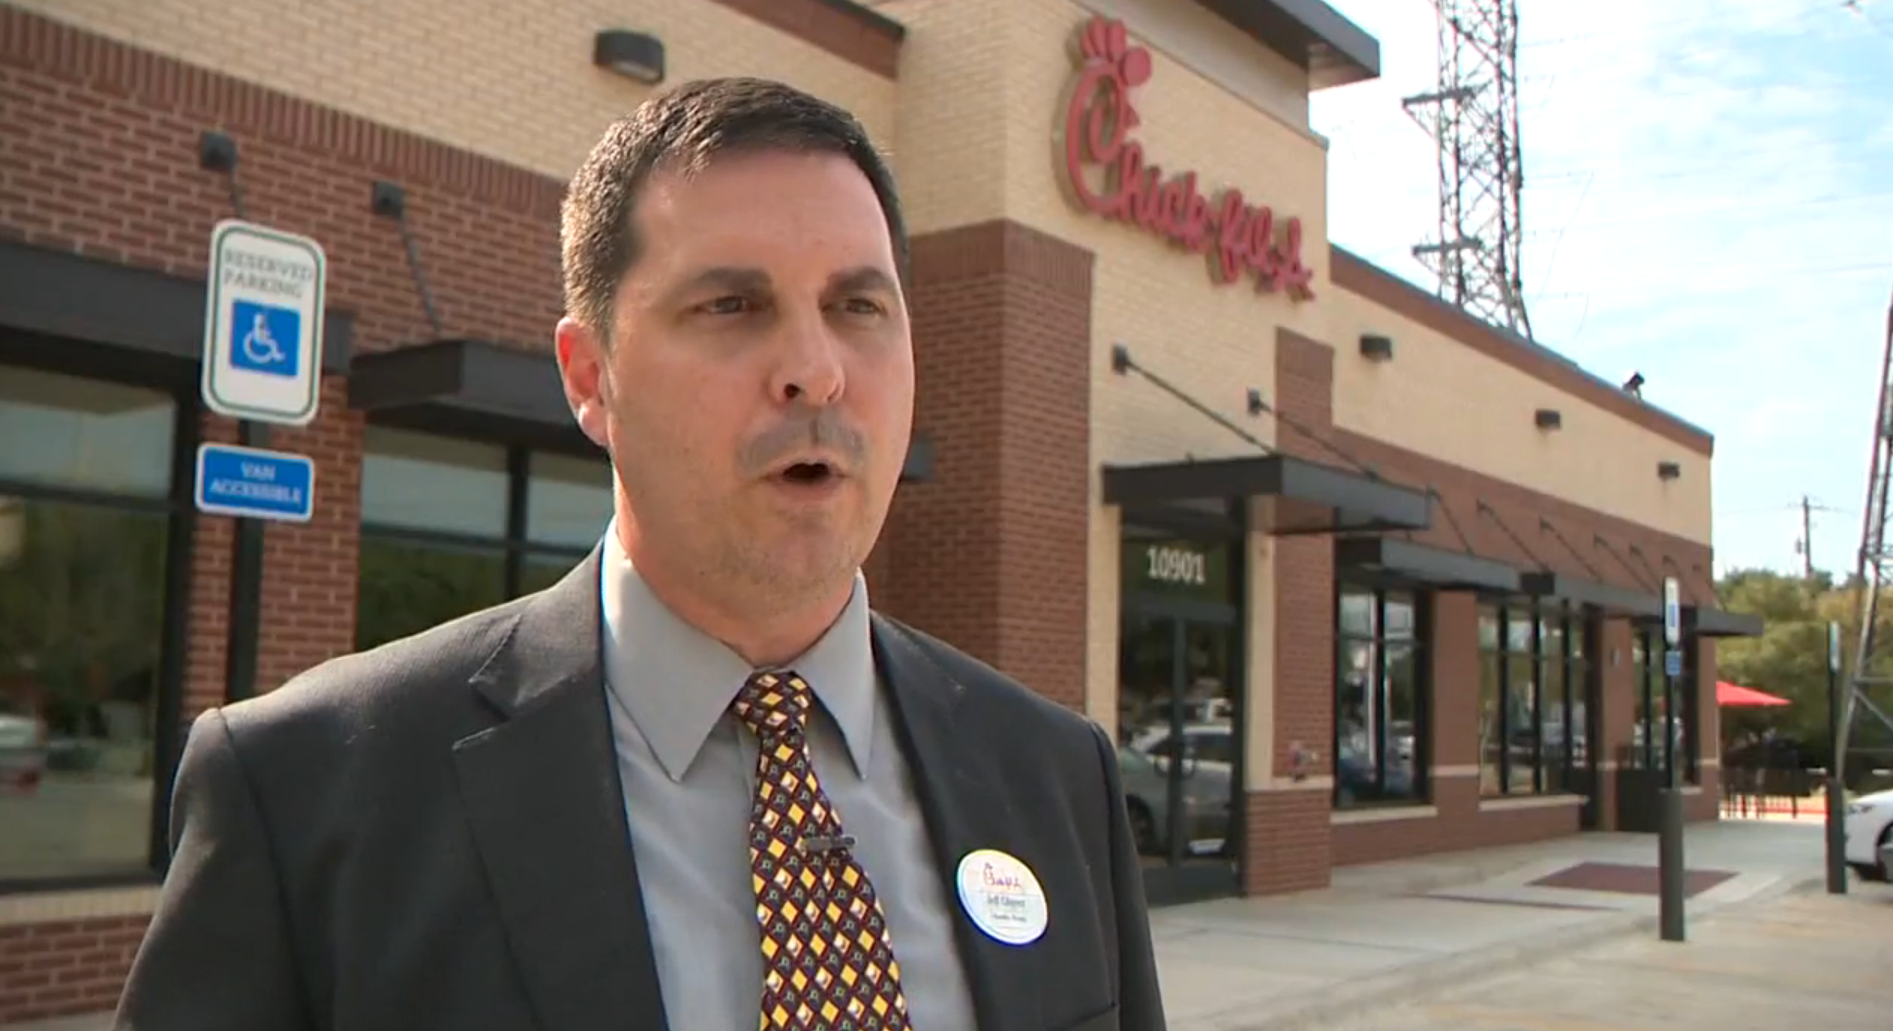 A Chick-fil-A owner shocked his employees in the best way after shutting down for renovations